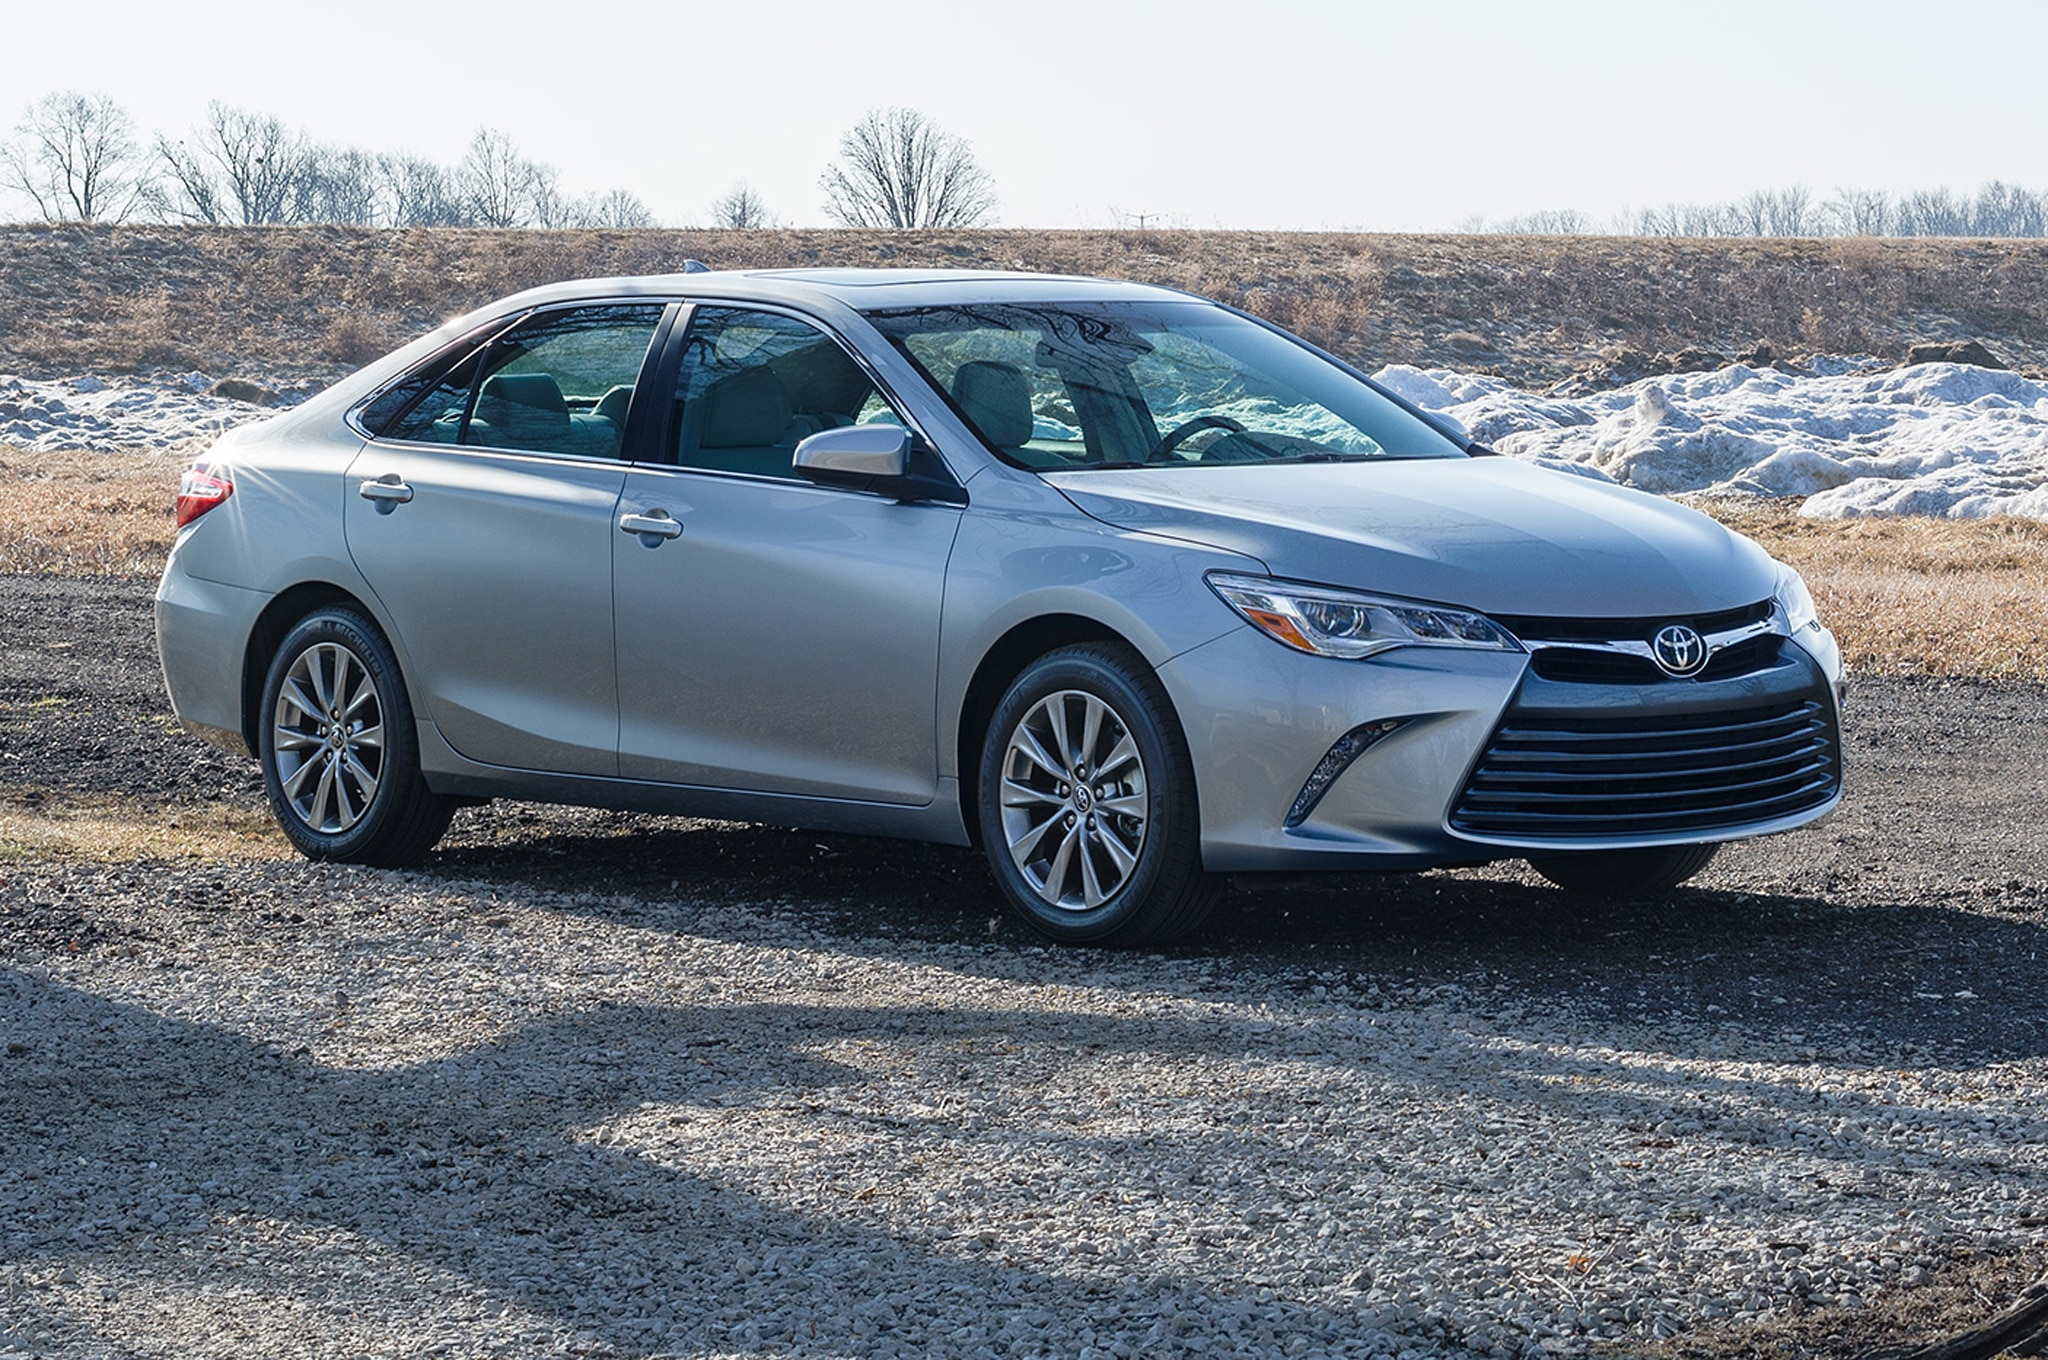 2015 Toyota Camry Refresh Shown in New York - Automobile Magazine